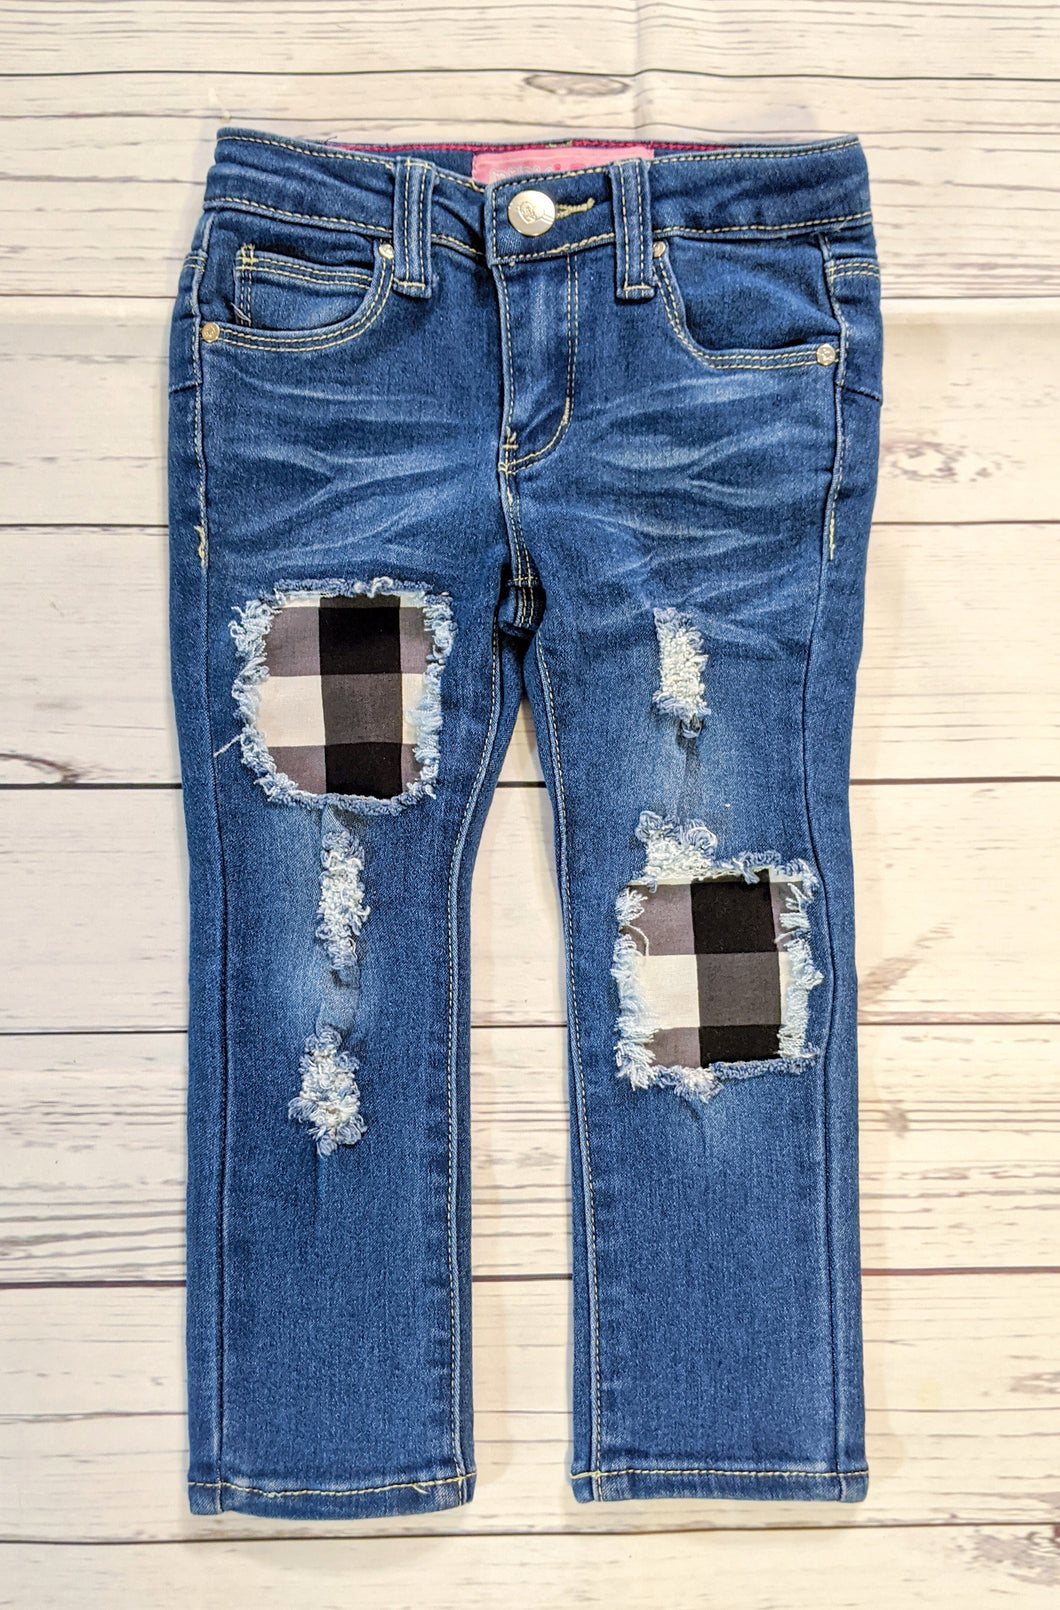 Black/White Buffalo Plaid Jeans